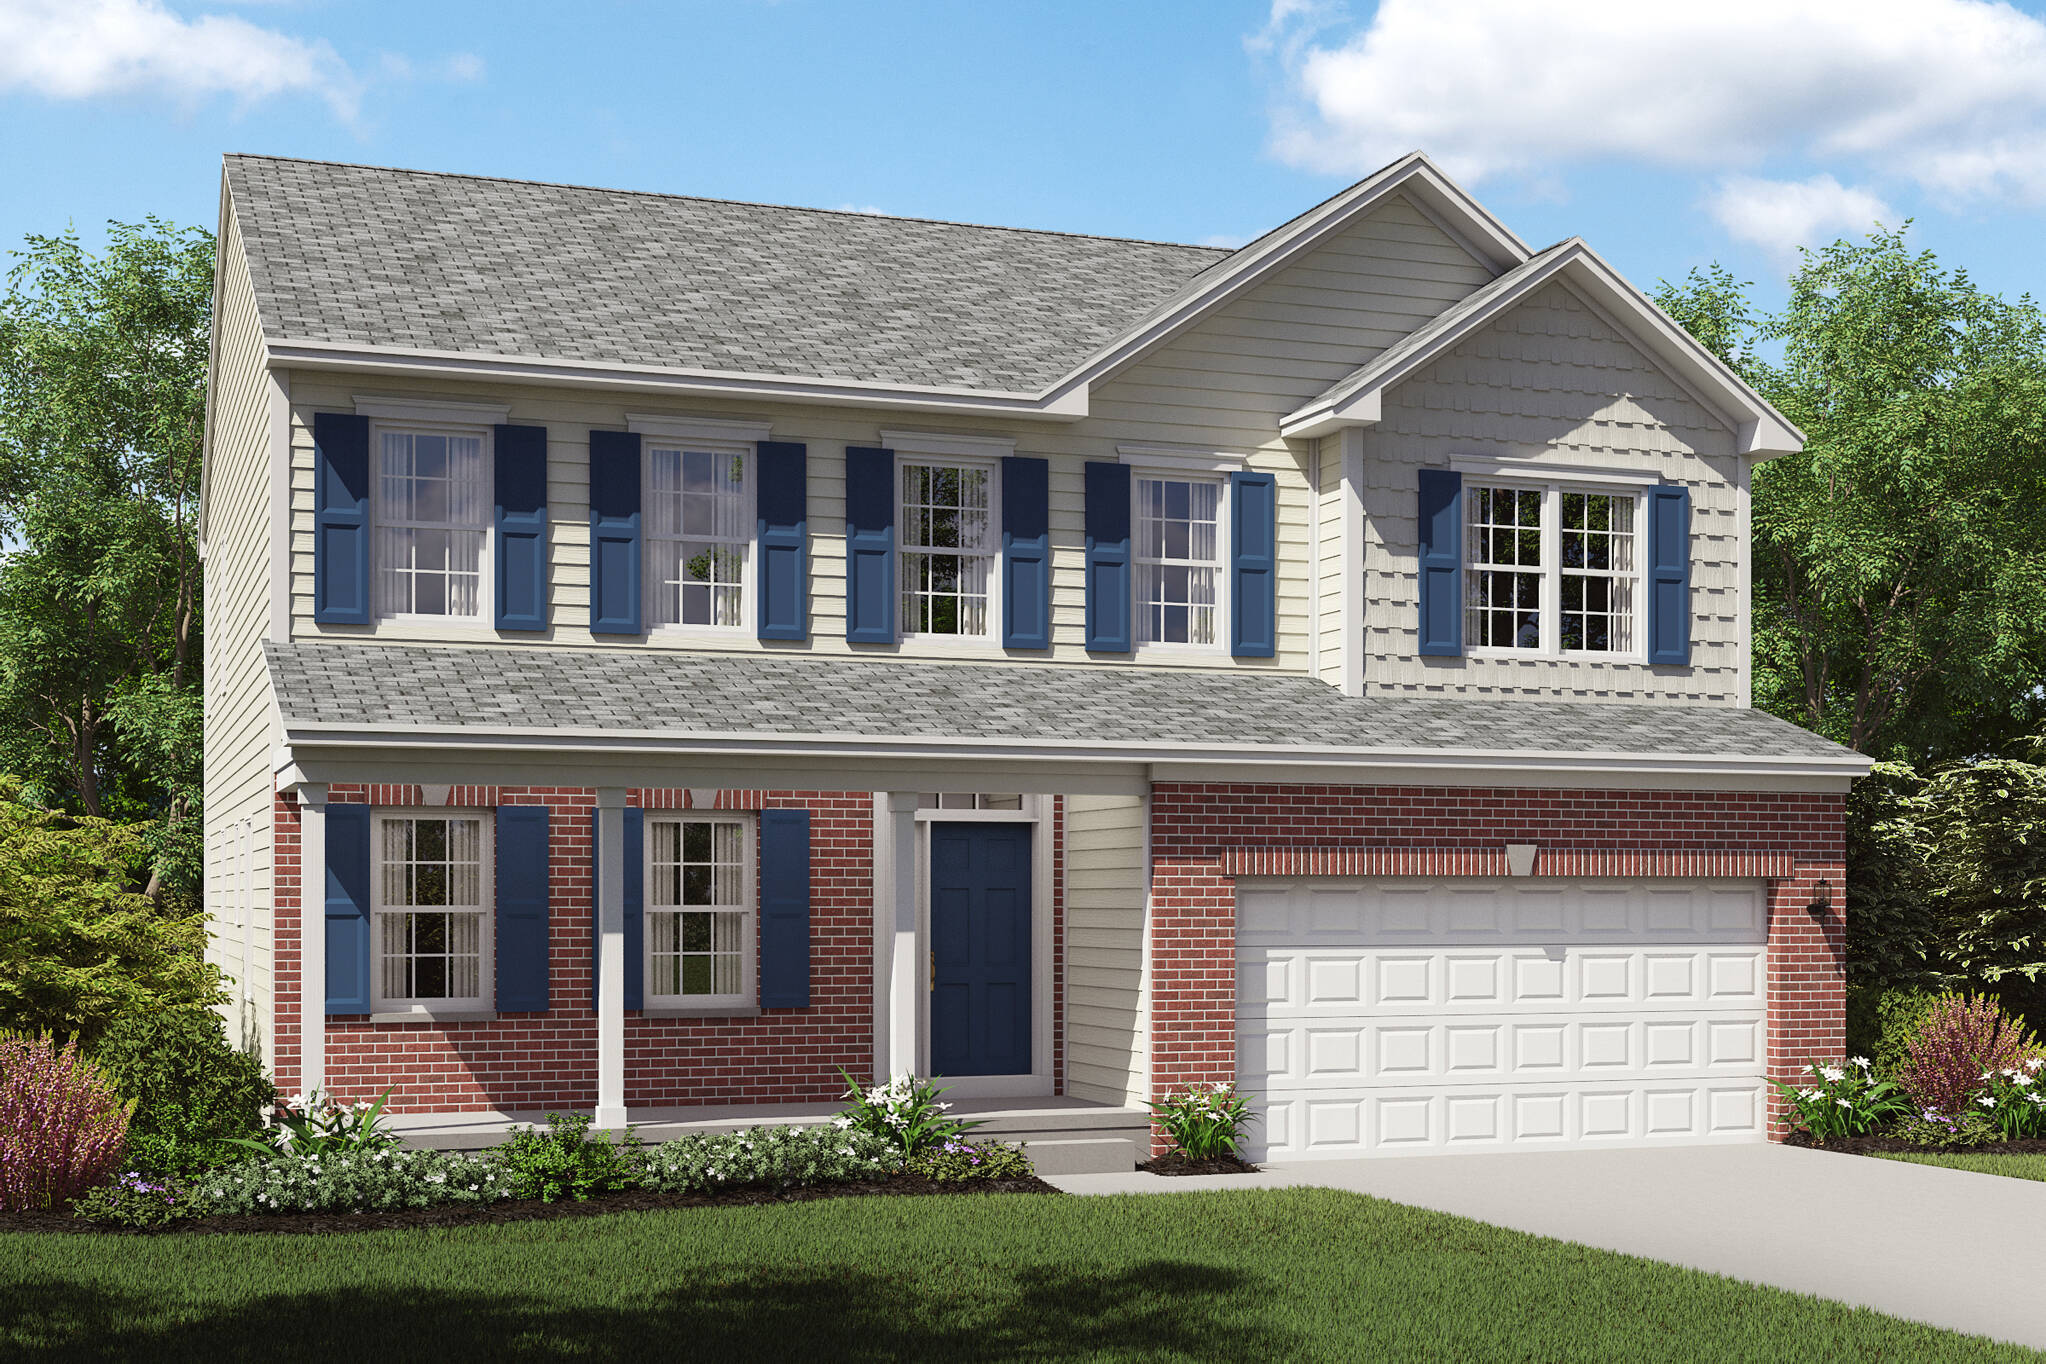 brantwood new home brick exterior cleveland ohio